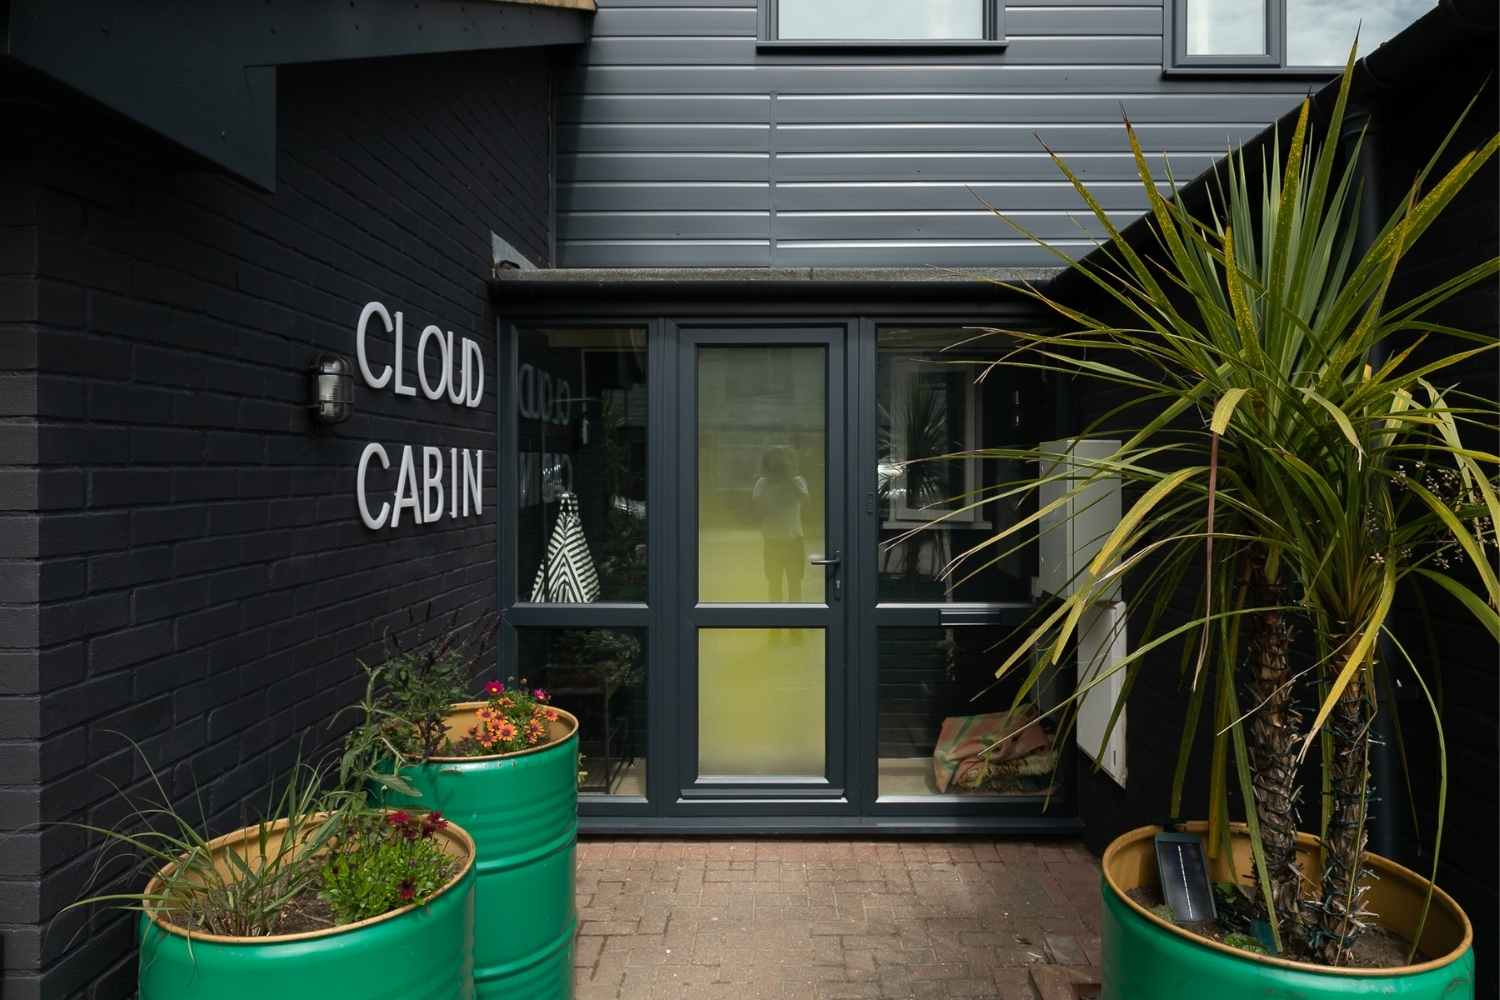 The entrance to Cloud Cabin